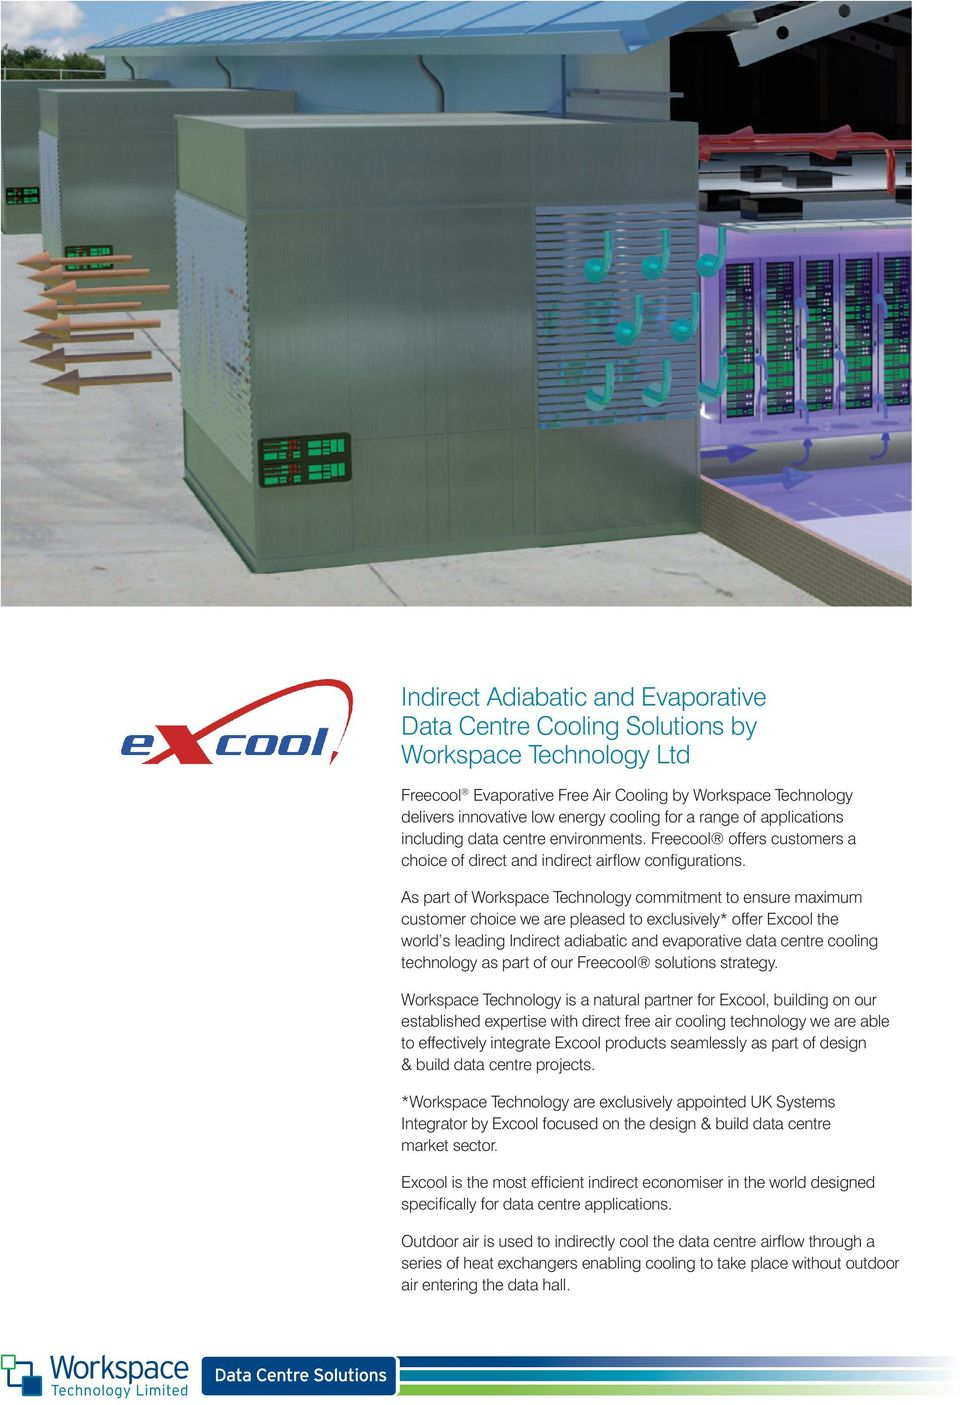 As part of Workspace Technology commitment to ensure maximum customer choice we are pleased to exclusively* offer Excool the world s leading Indirect adiabatic and evaporative data centre cooling